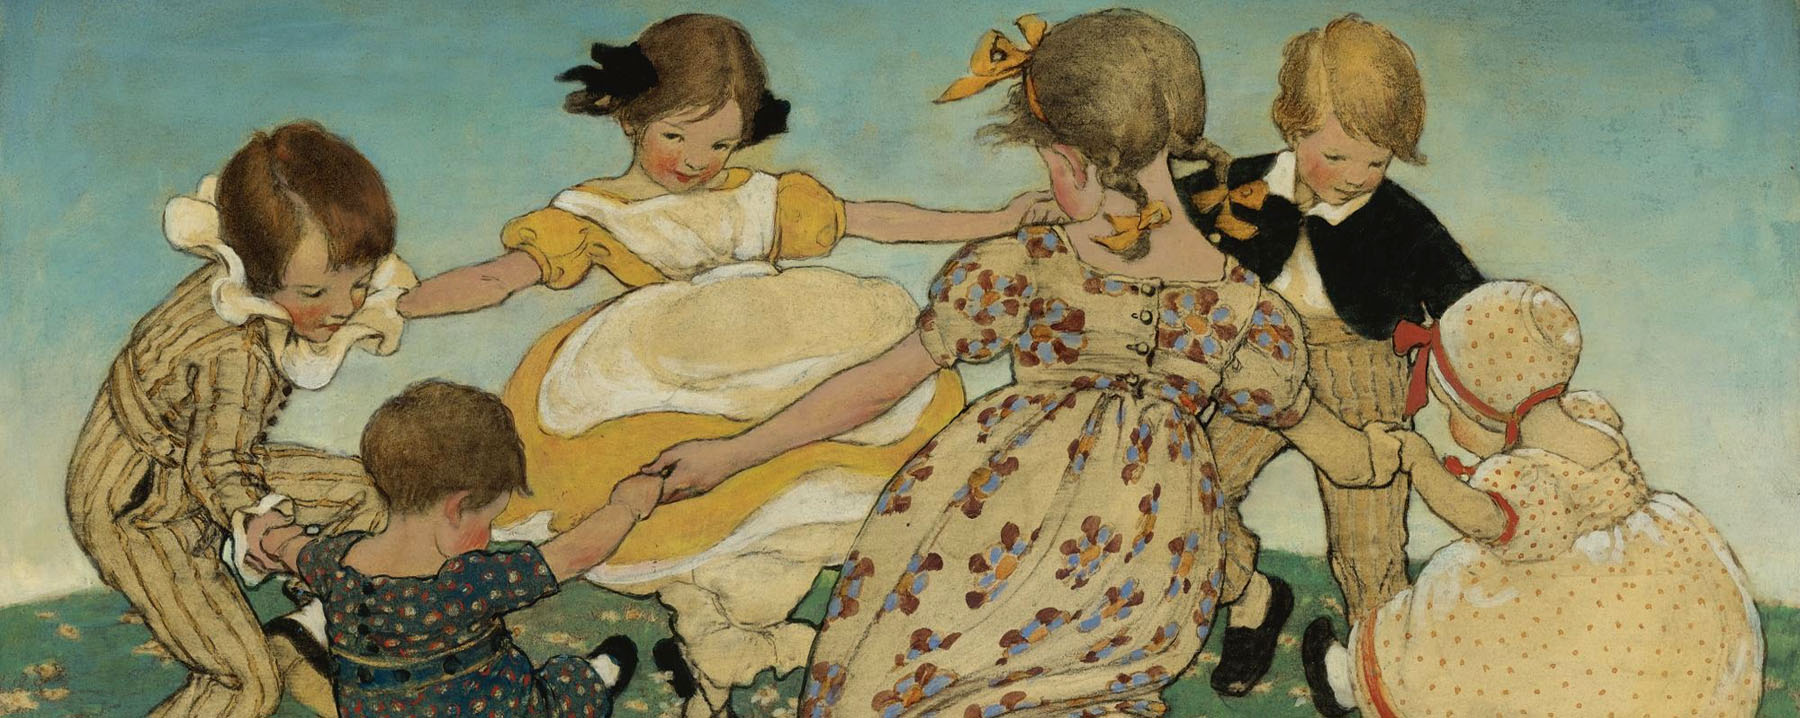 Jessie Willcox Smith - Round the Ring of Roses